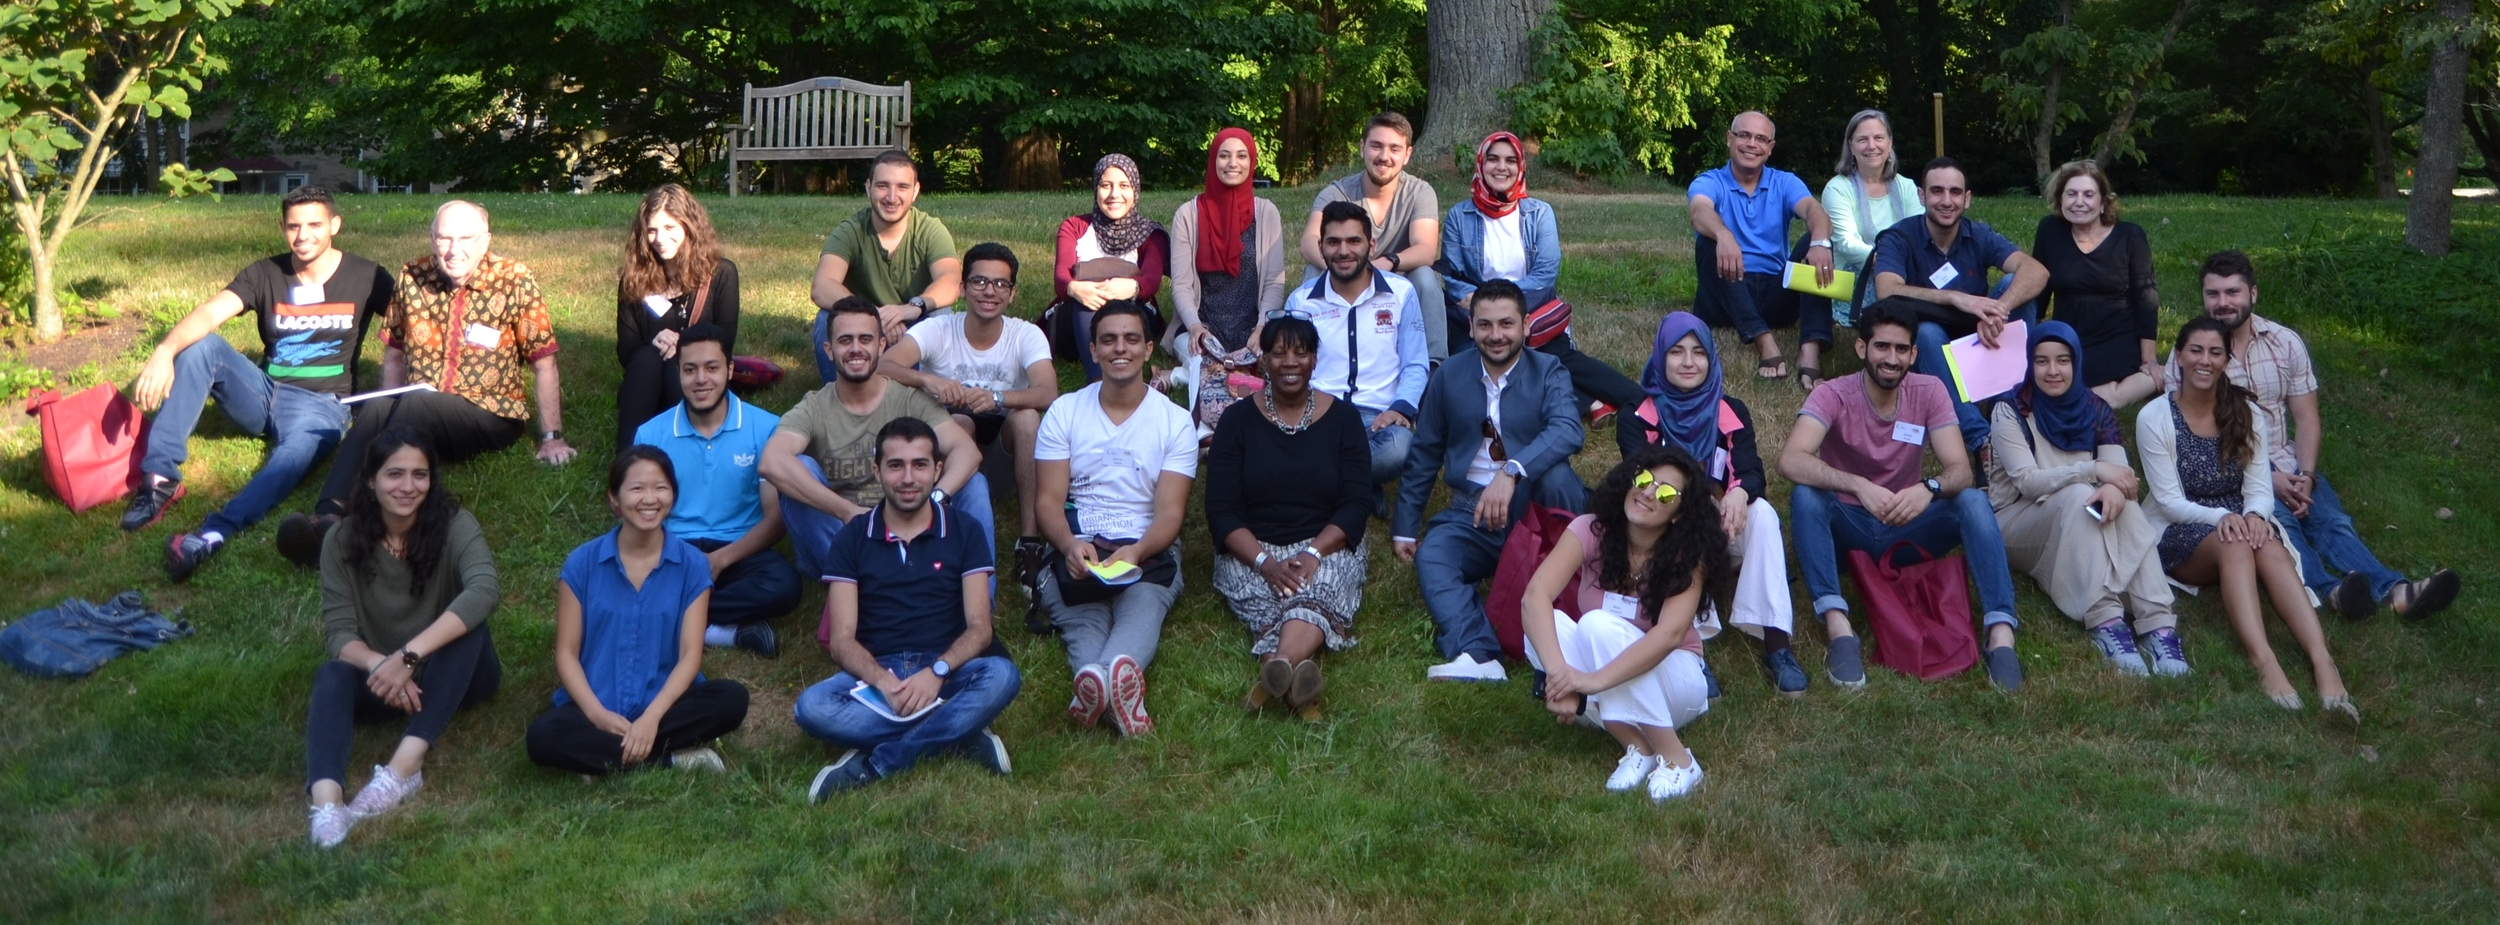 Summer 2016 SUSI students gathering with staff and program associates at Pendle Hill (July 12).